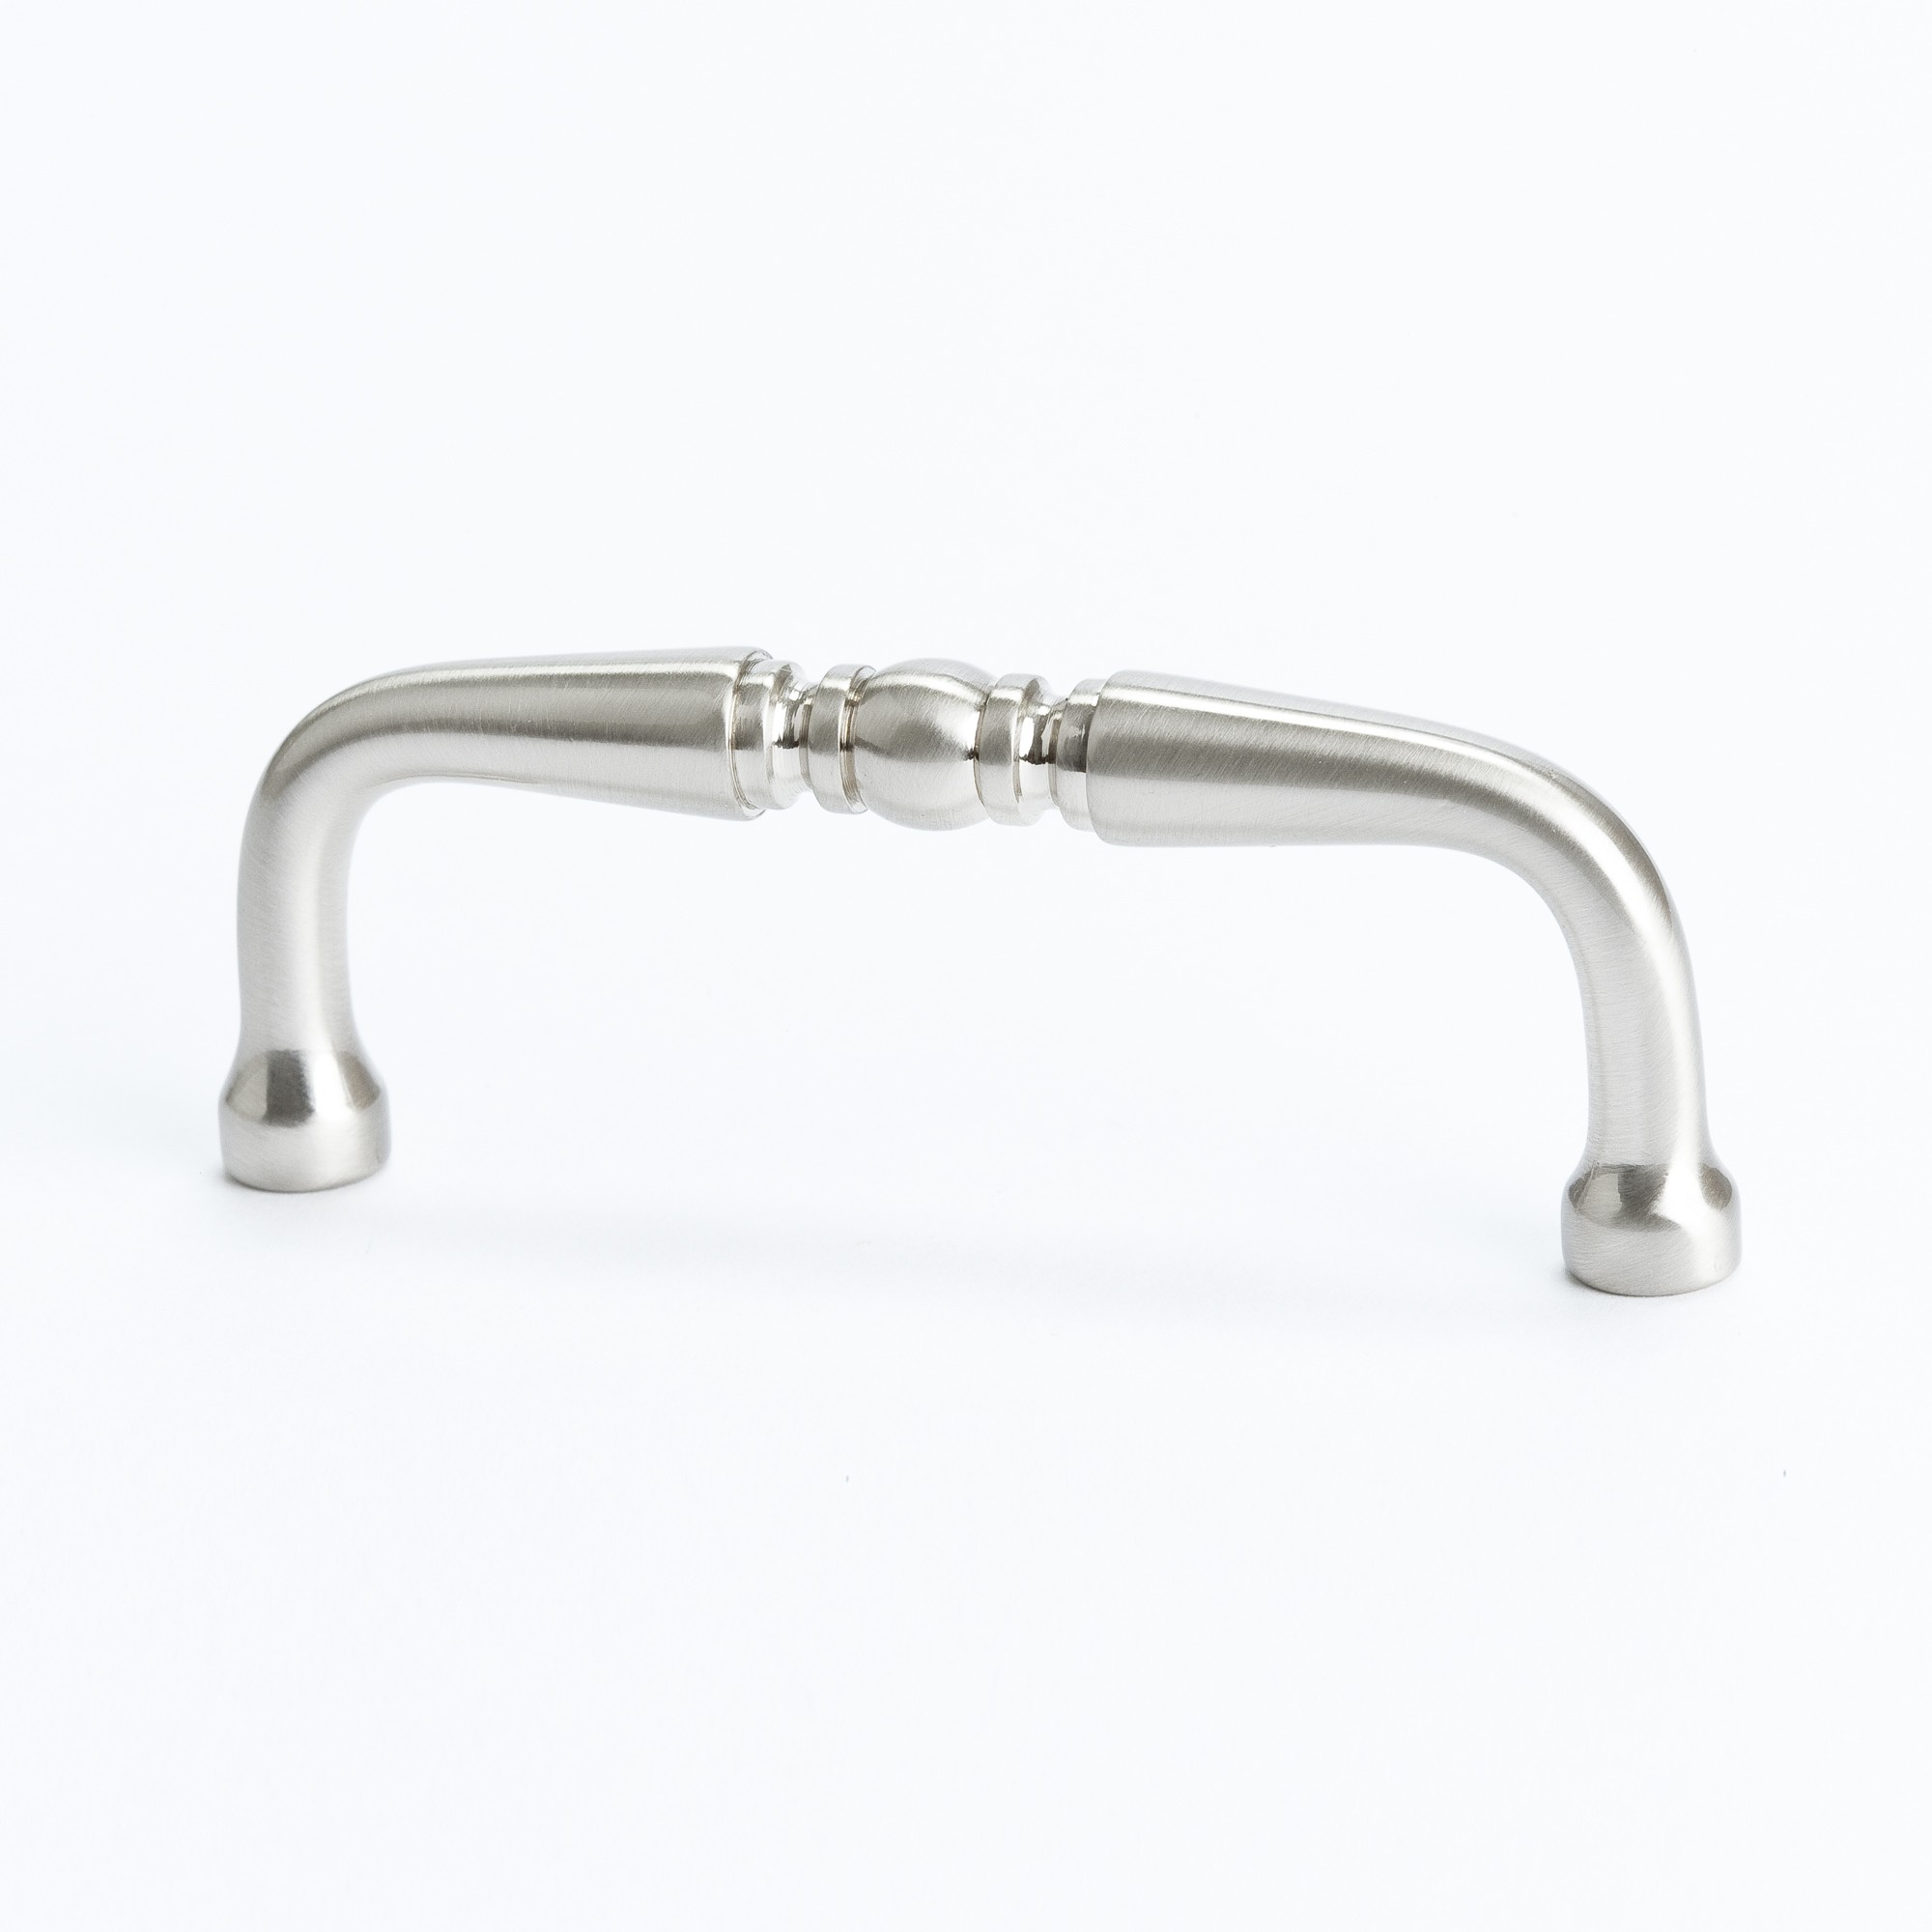 Pull (Brushed Nickel) - 3""